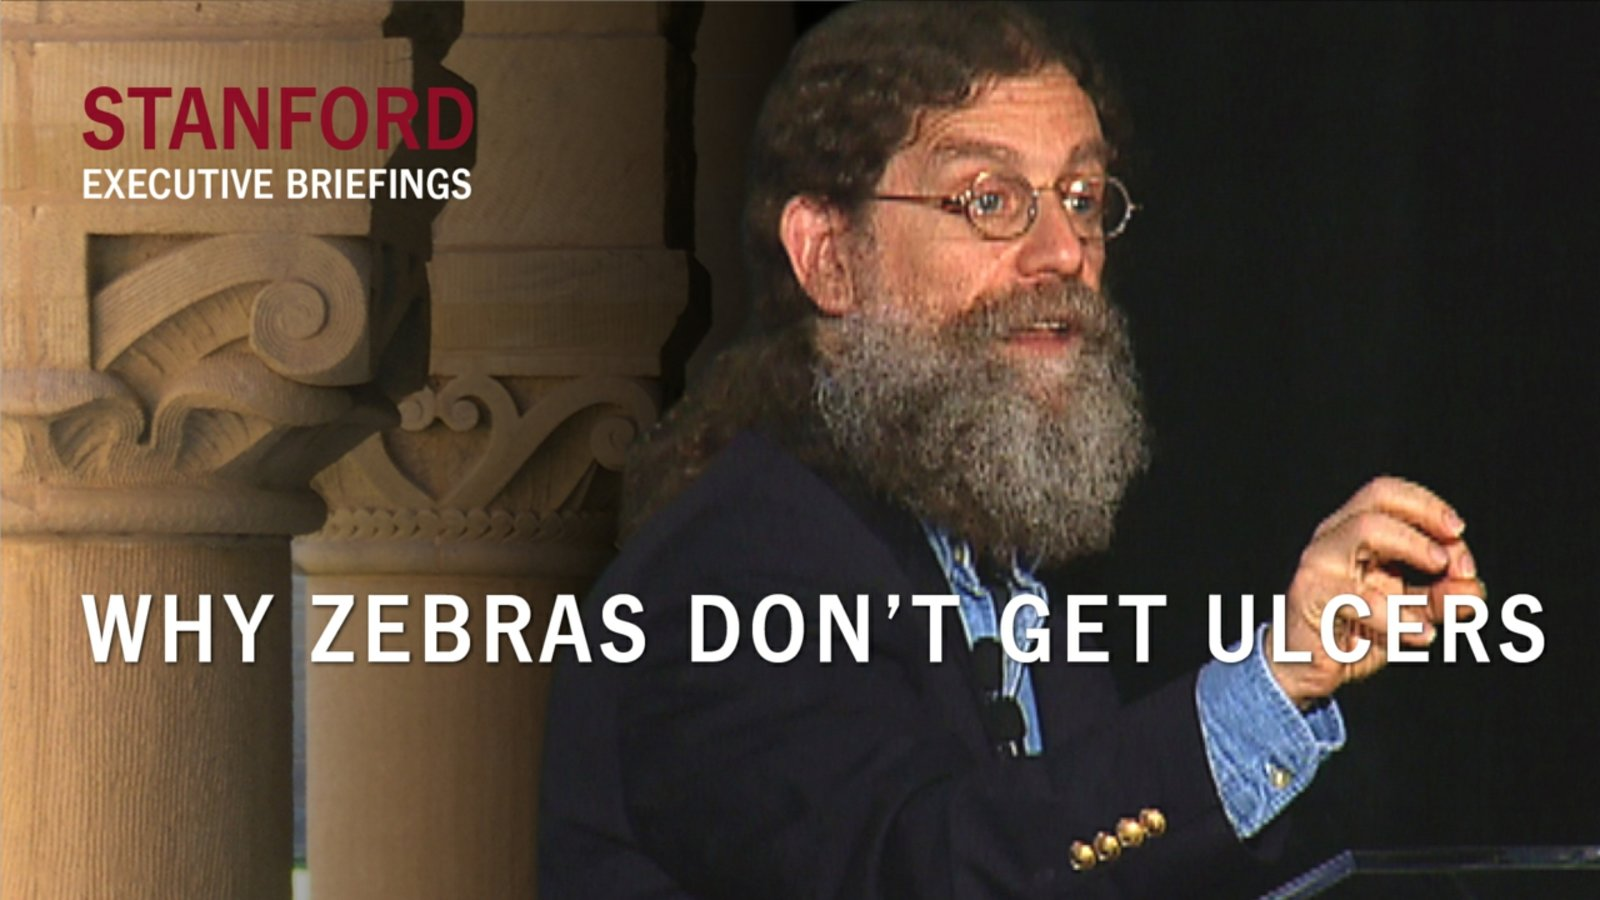 Why Zebras Don't Get Ulcers - With Robert Sapolsky